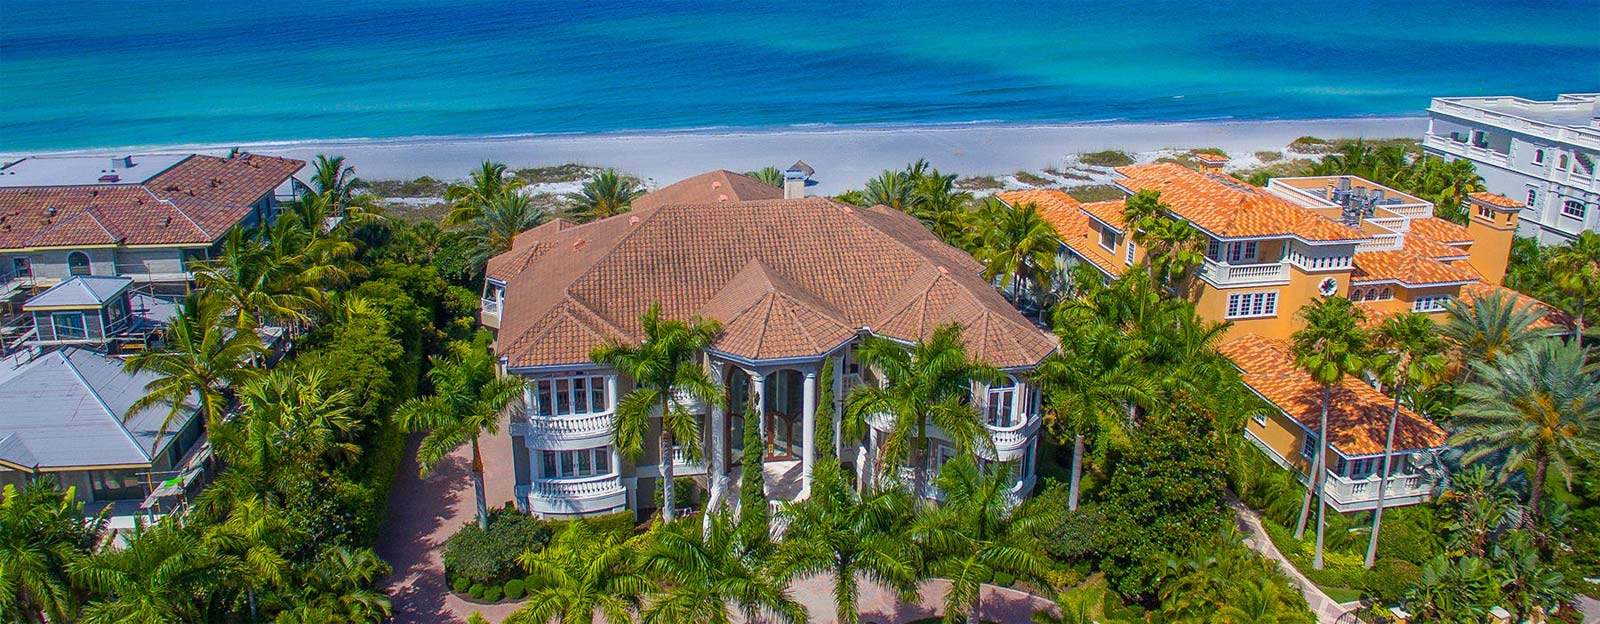 view of Longboat Key residence